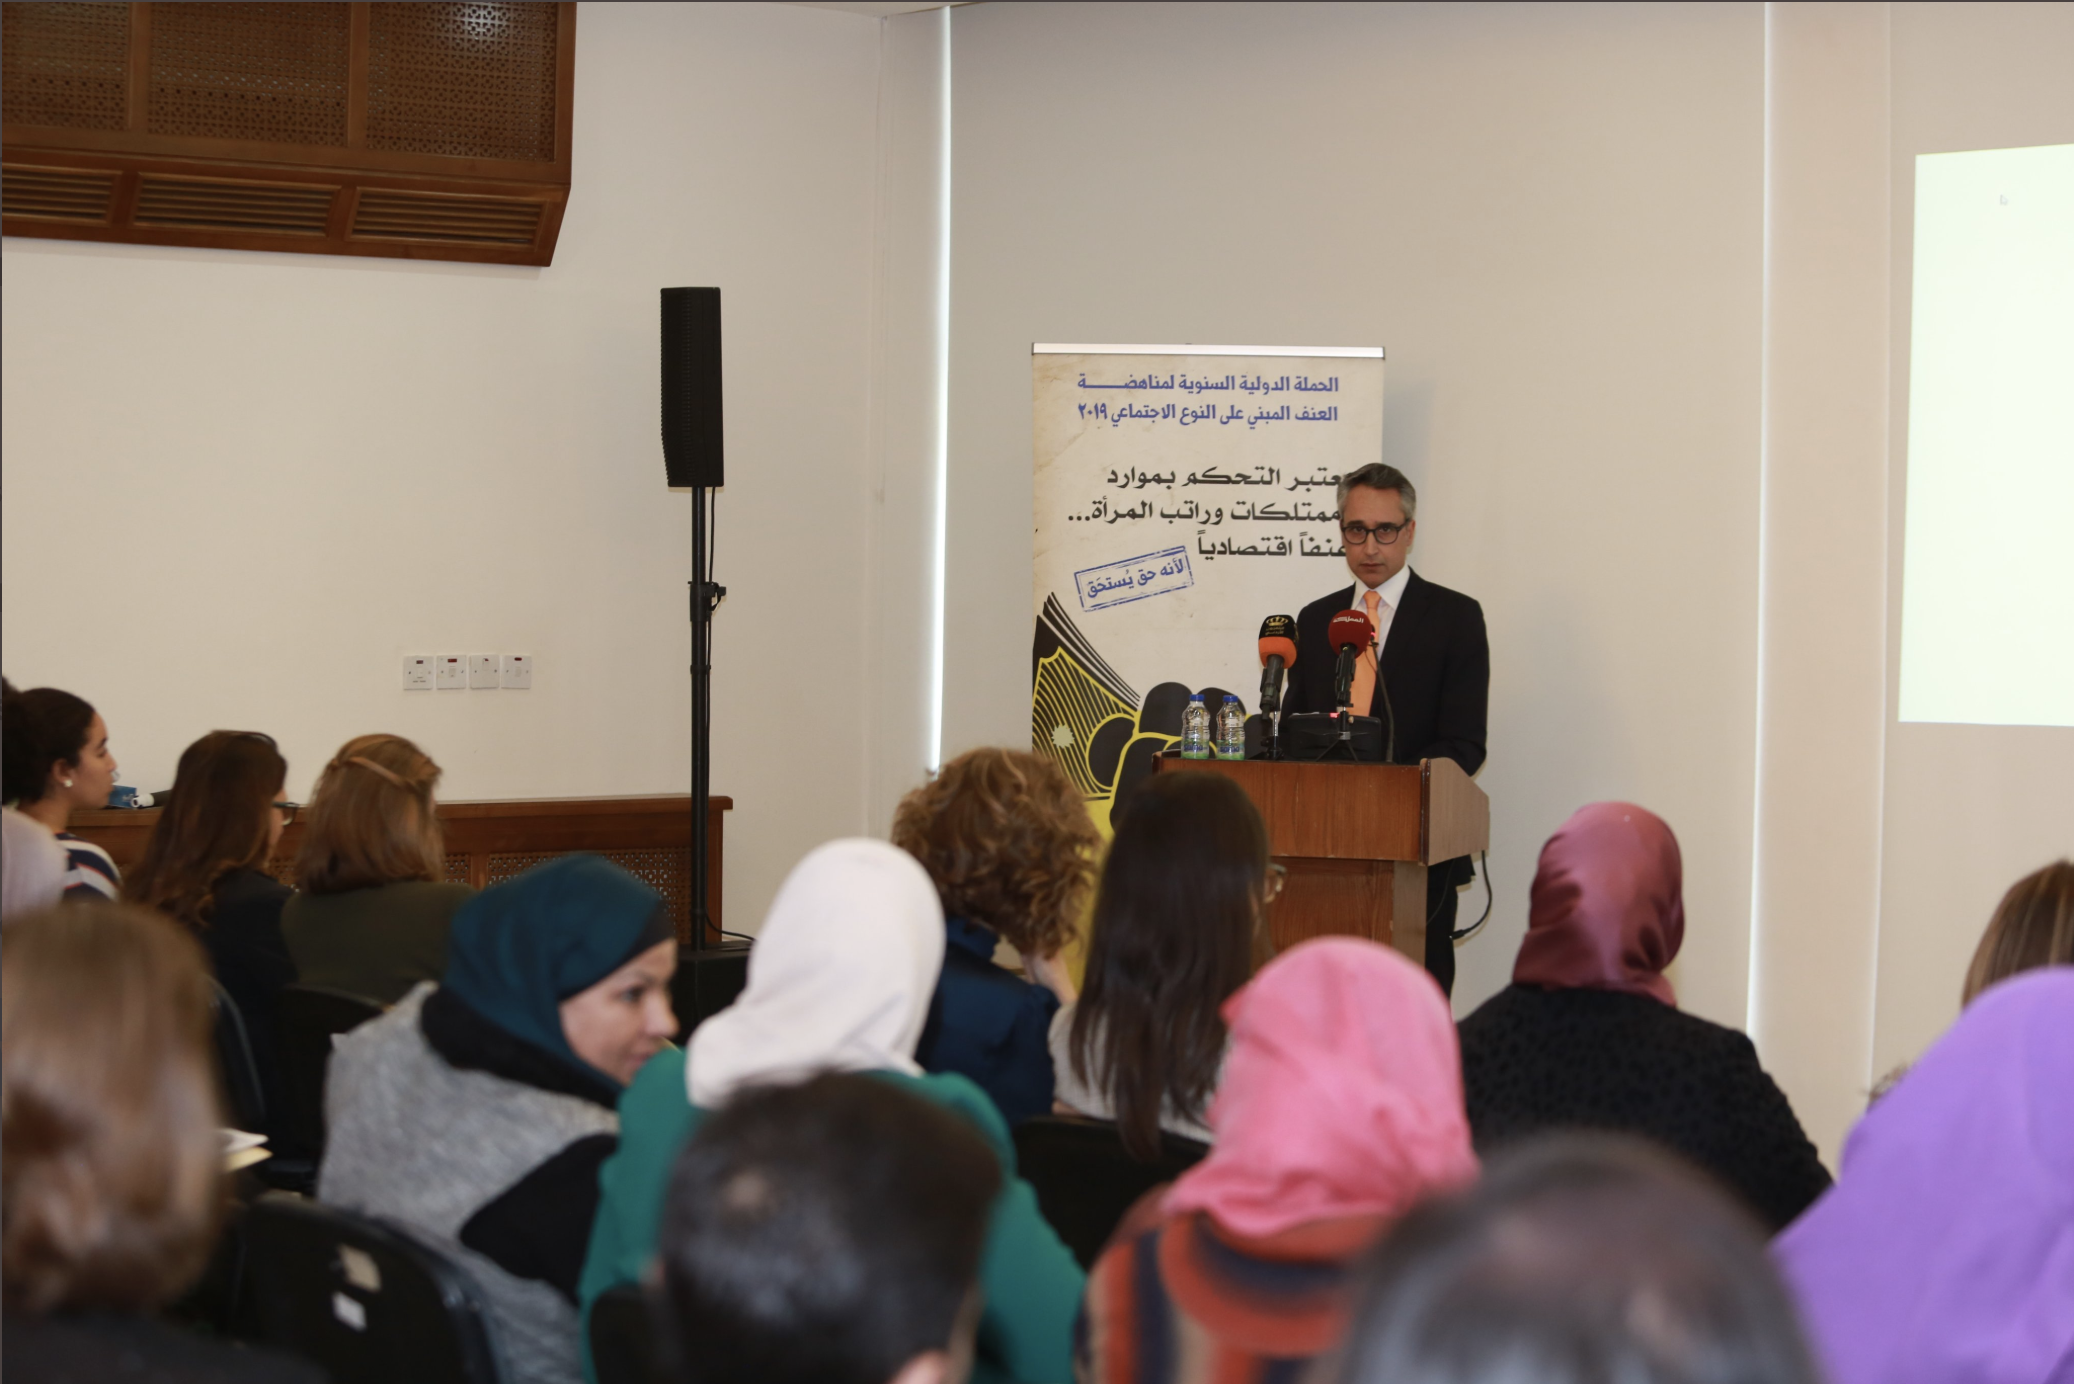 """The Jordanian National Commission for Women launches the international advocacy campaign '16 Days of Activism Against Gender-Based Violence' under the theme """"Break the Silence on Economic Violence"""""""